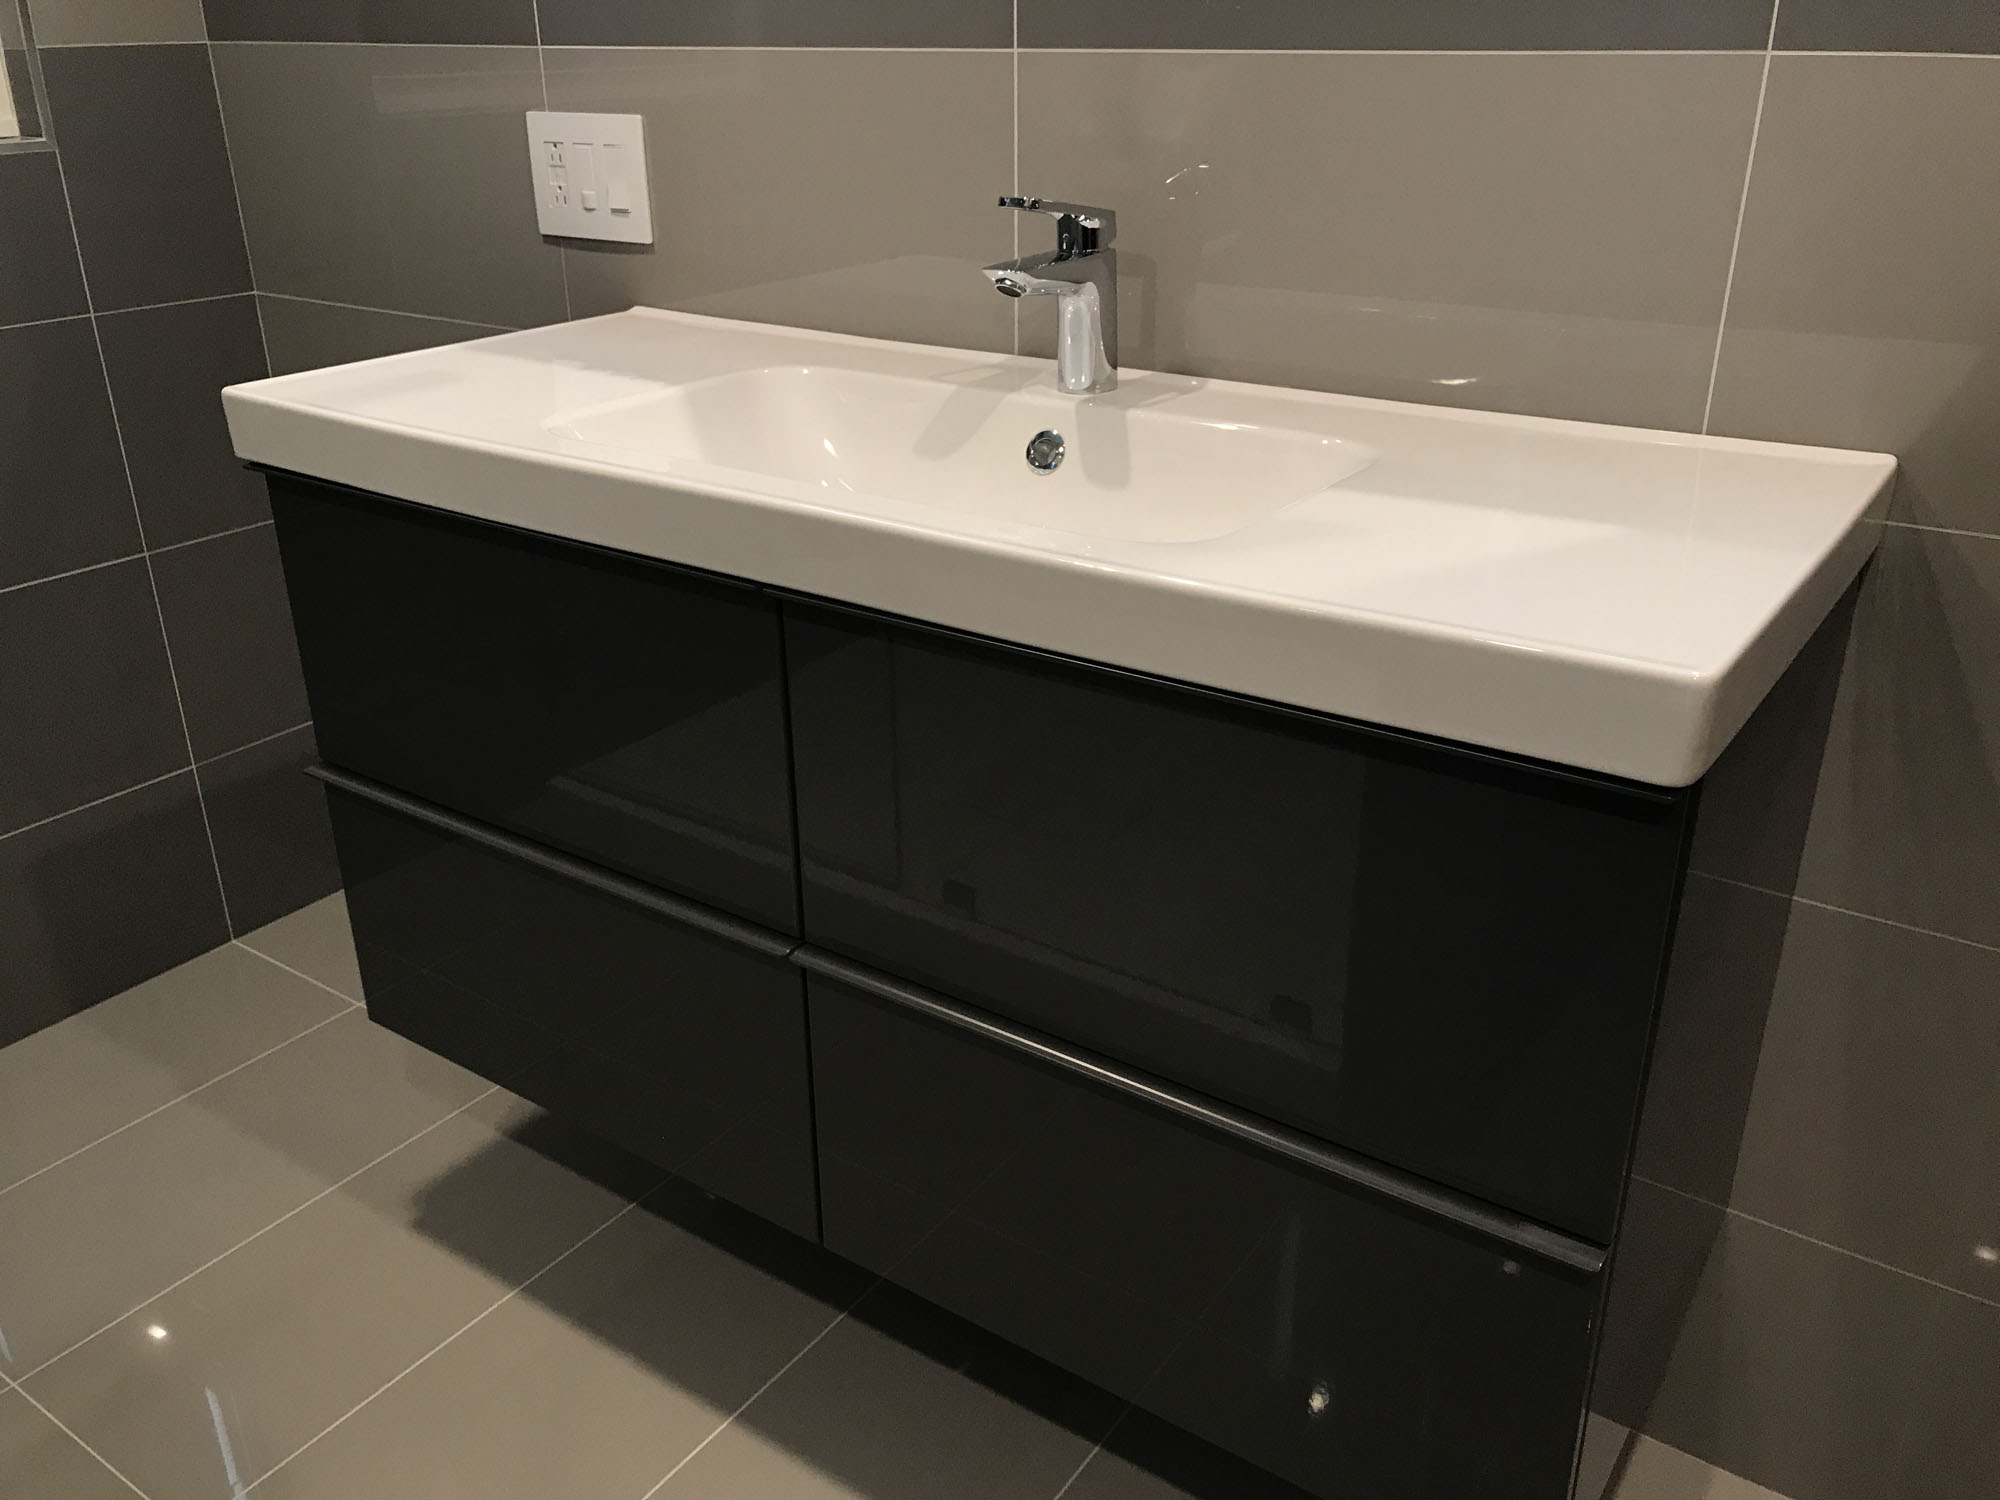 Rafal Wasniowski Author At Sunny Construction Remodeling - Bathroom remodel schaumburg il